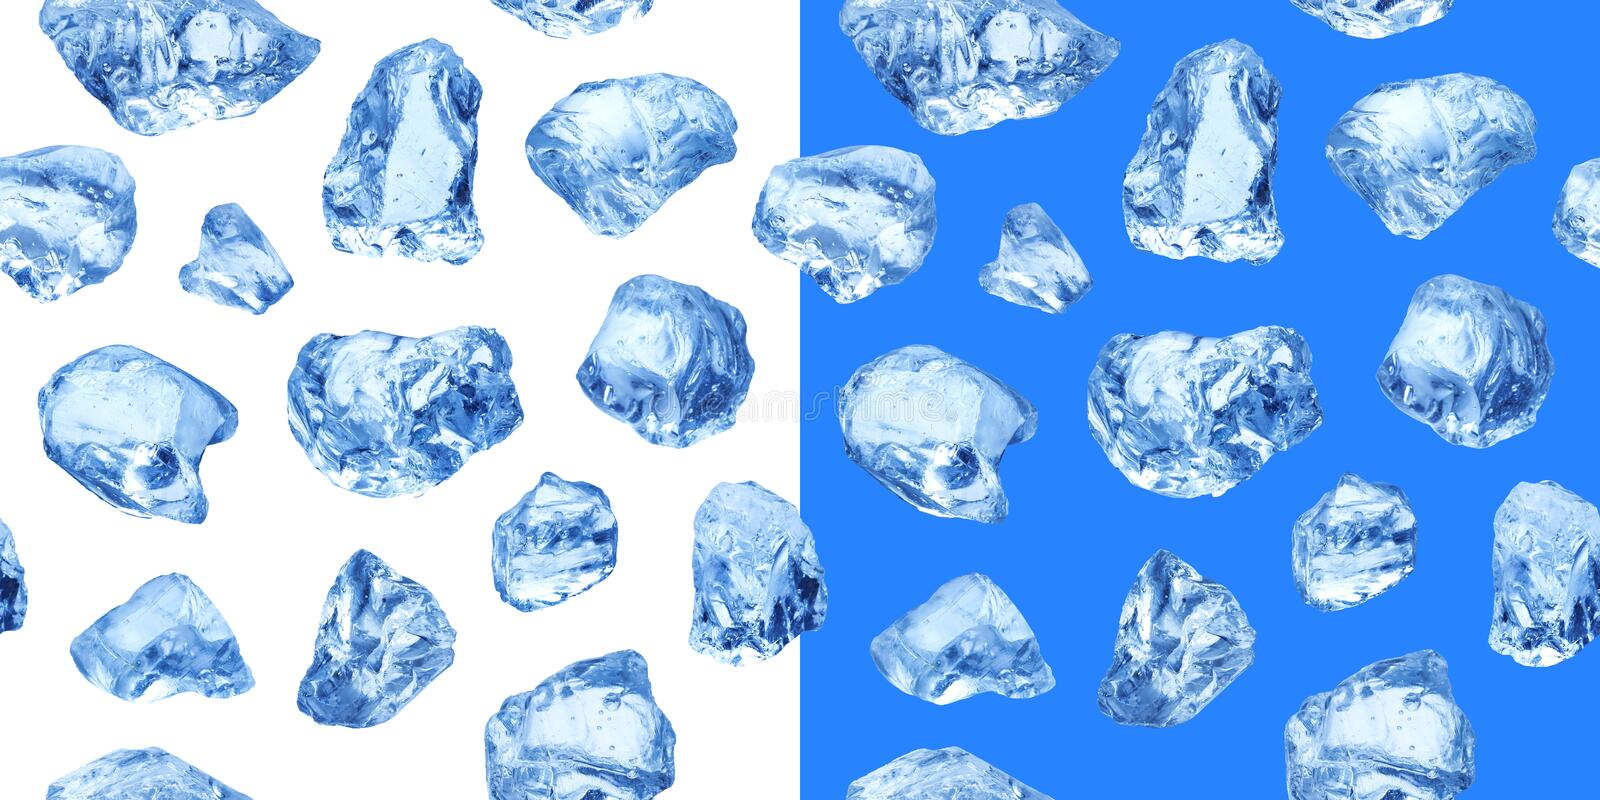 Pieces of natural ice, seamless pattern royalty free stock photography